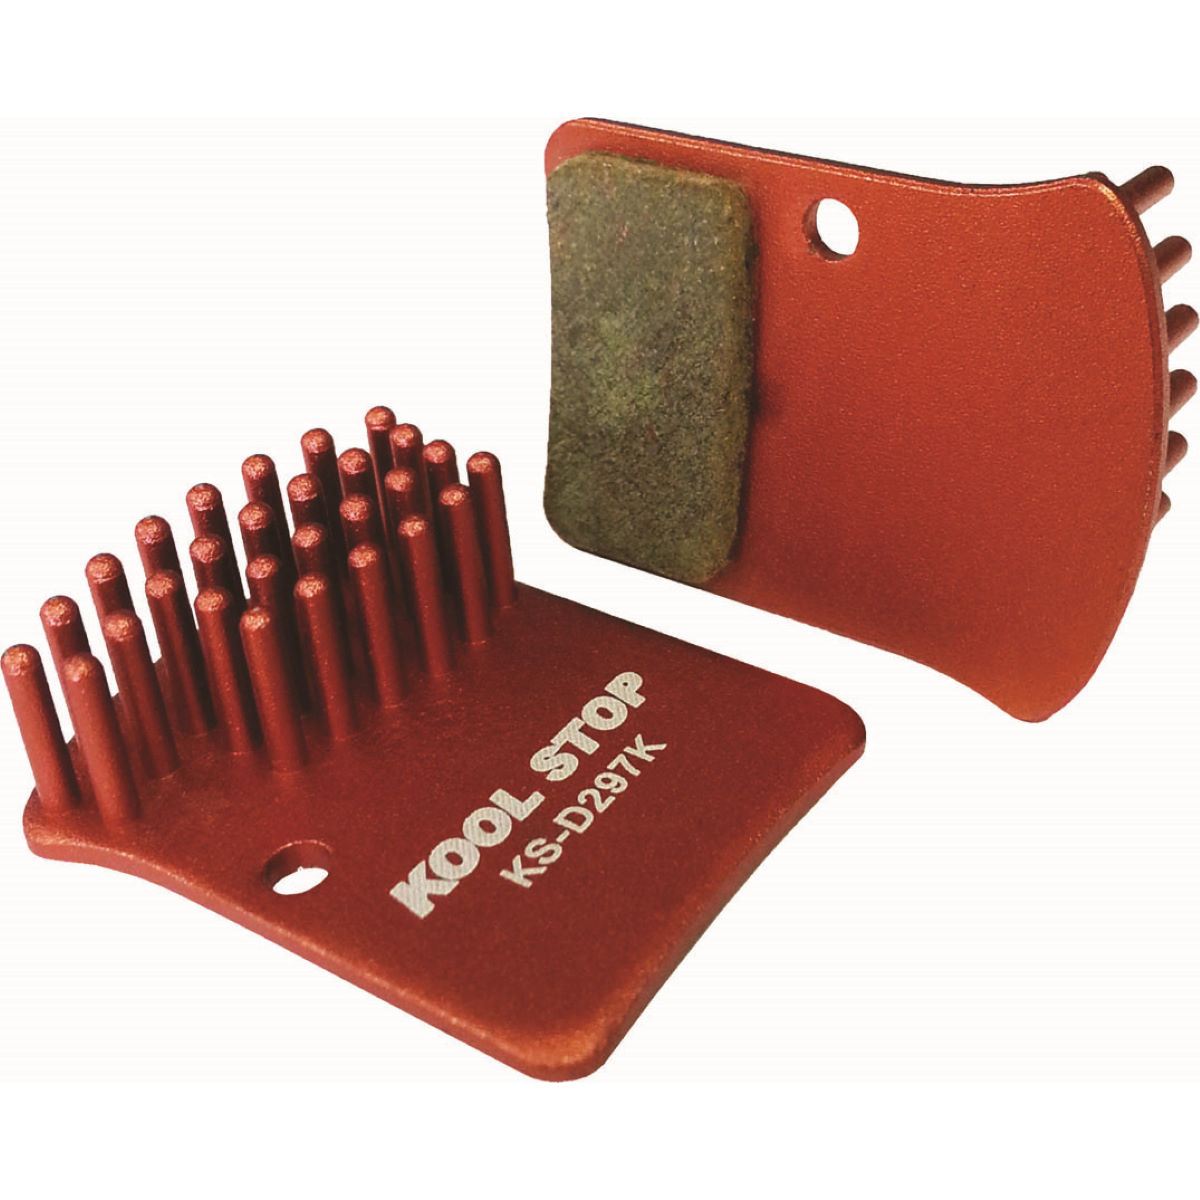 Kool Stop Kool Stop Sram Red Road Disc Pads   Disc Brake Pads